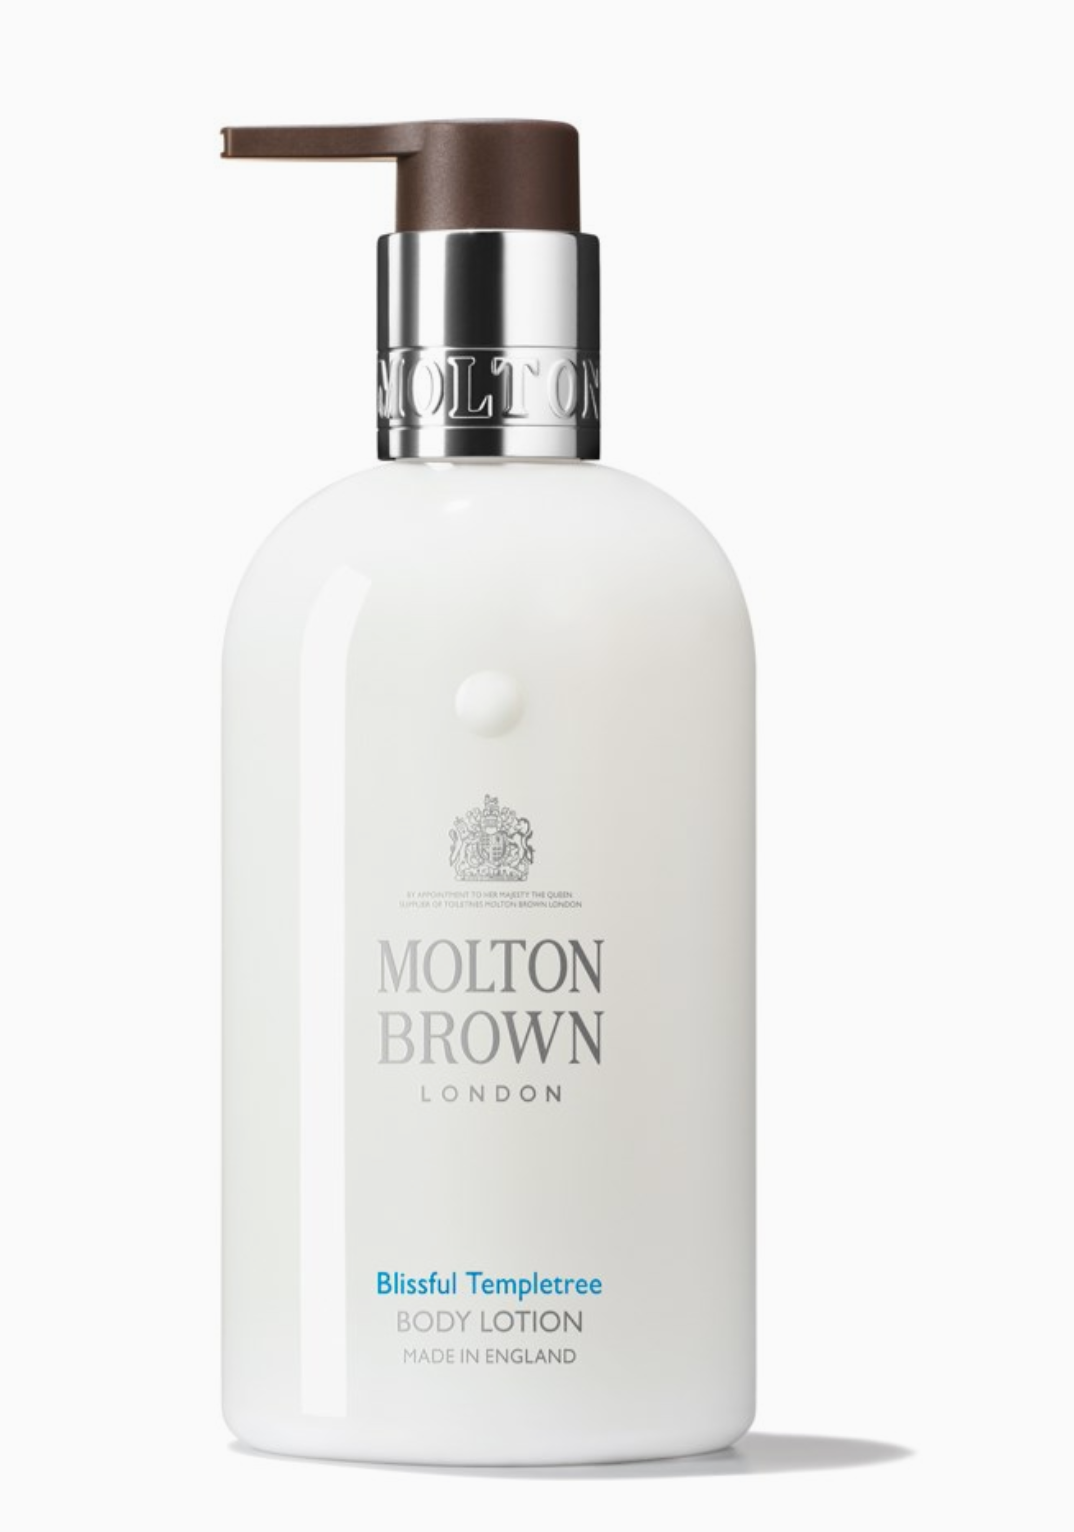 Blissful templetree body lotion-1